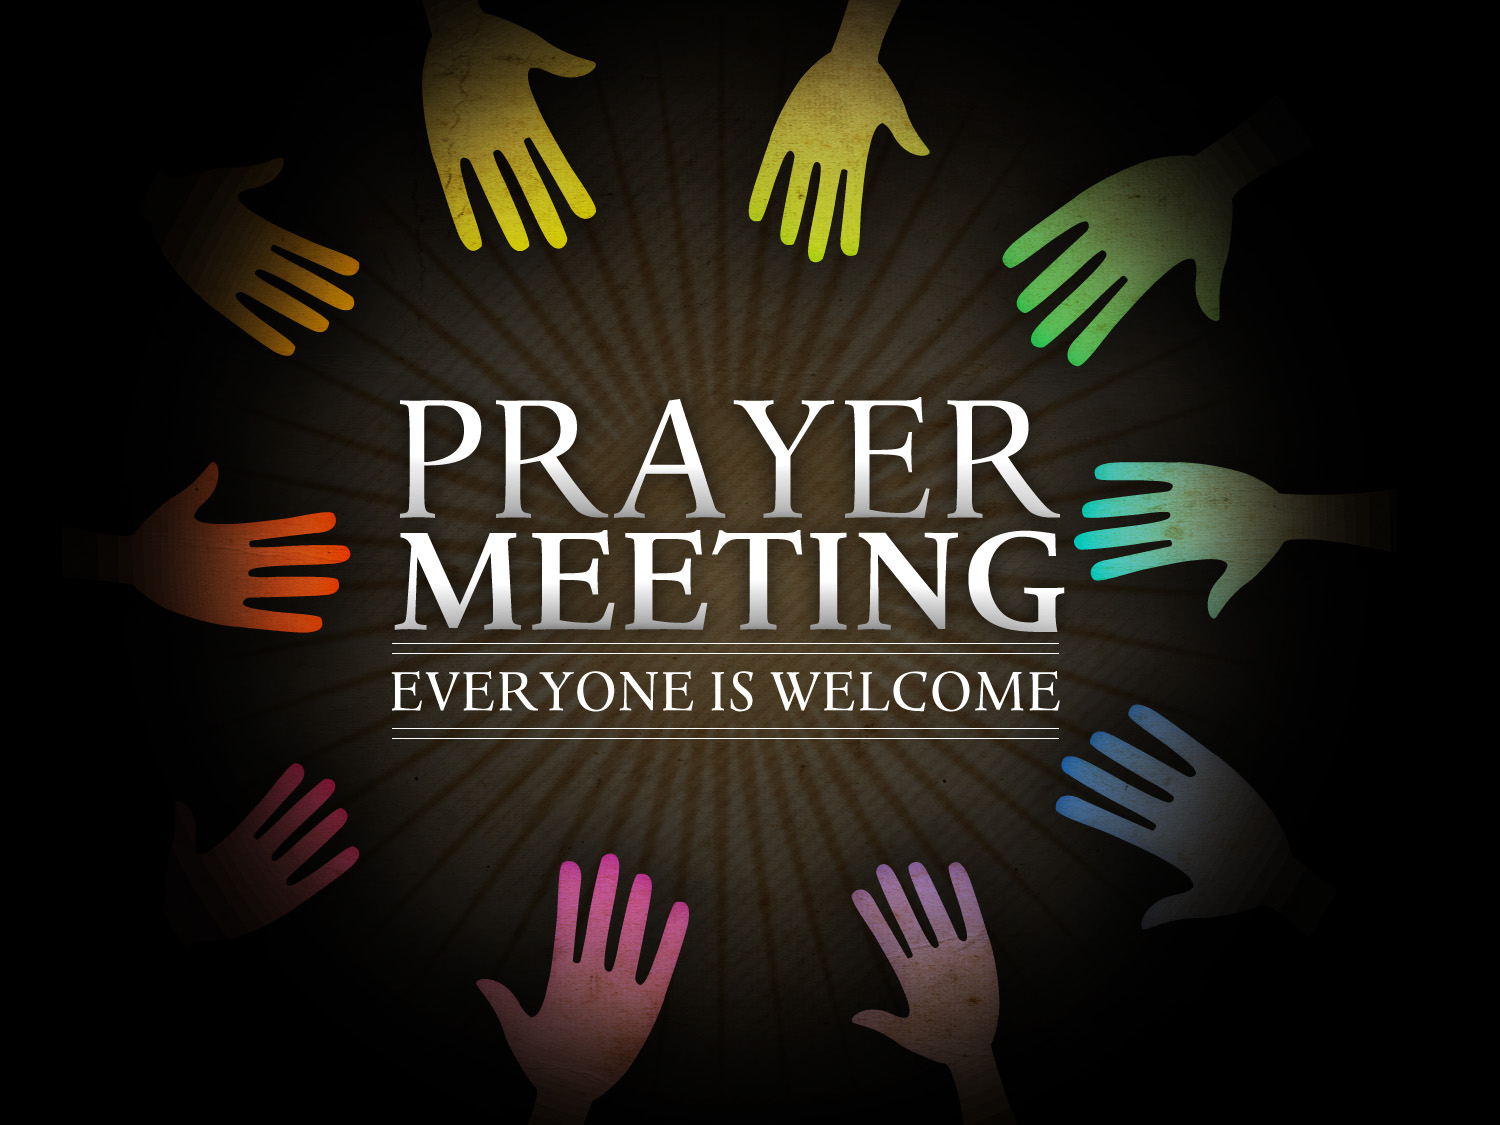 Upcoming Events | Prayer Meeting at Patton's Home | Bethel Baptist